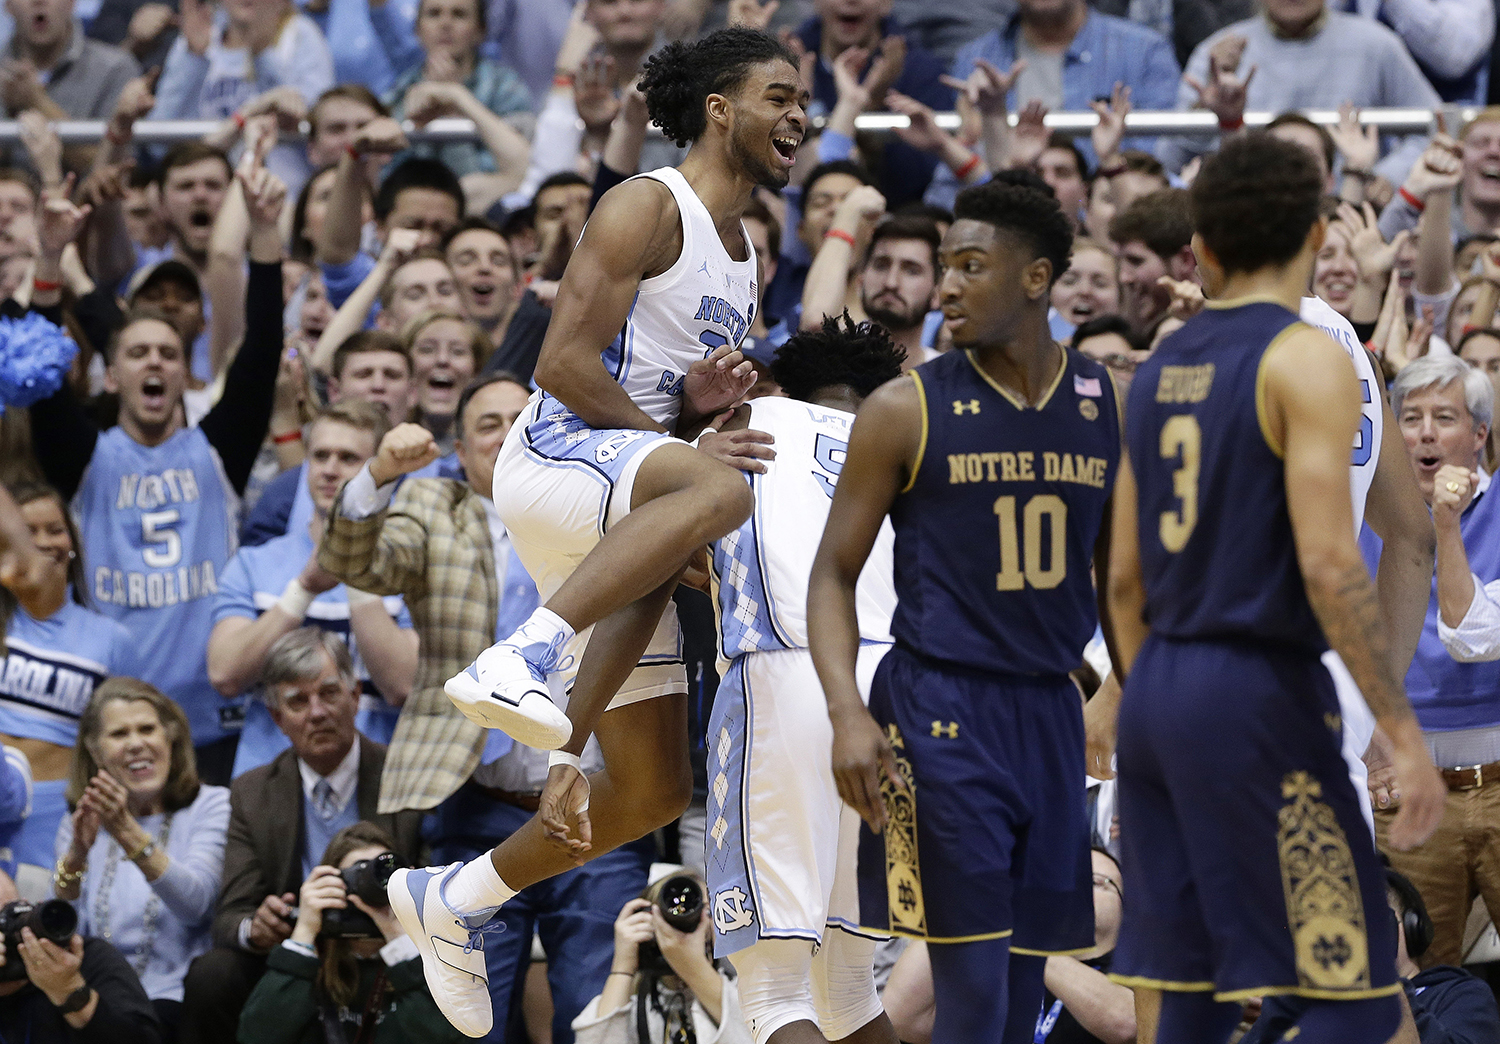 "<div class=""meta image-caption""><div class=""origin-logo origin-image ap""><span>AP</span></div><span class=""caption-text"">North Carolina's Coby White jumps while celebrating with Nassir Little while Notre Dame's TJ Gibbs (10) and Prentiss Hubb (3) walk away. (Gerry Broome)</span></div>"